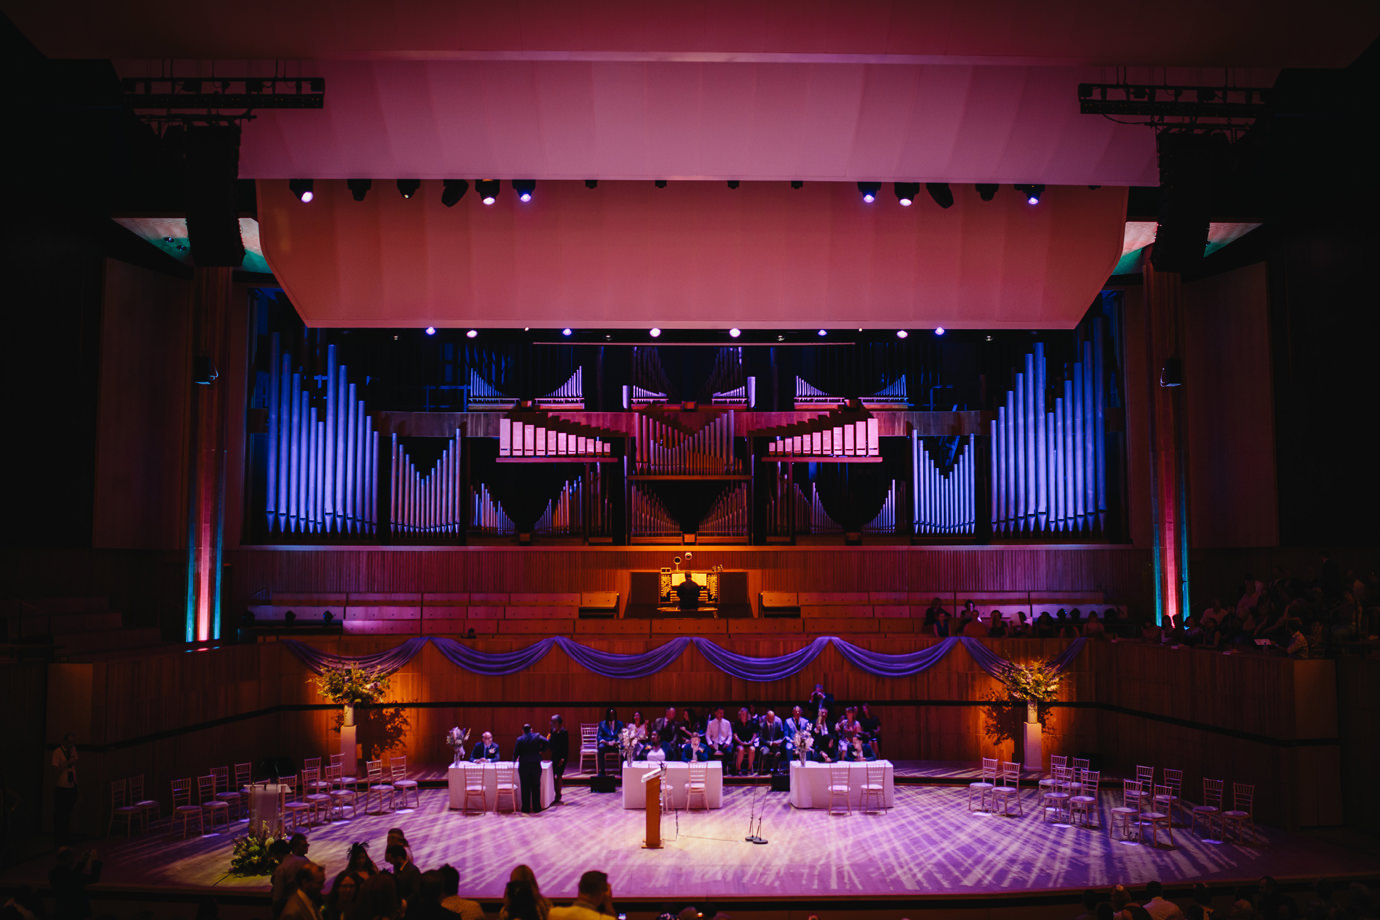 The Royal Festival Hall, ready for the Festival of love